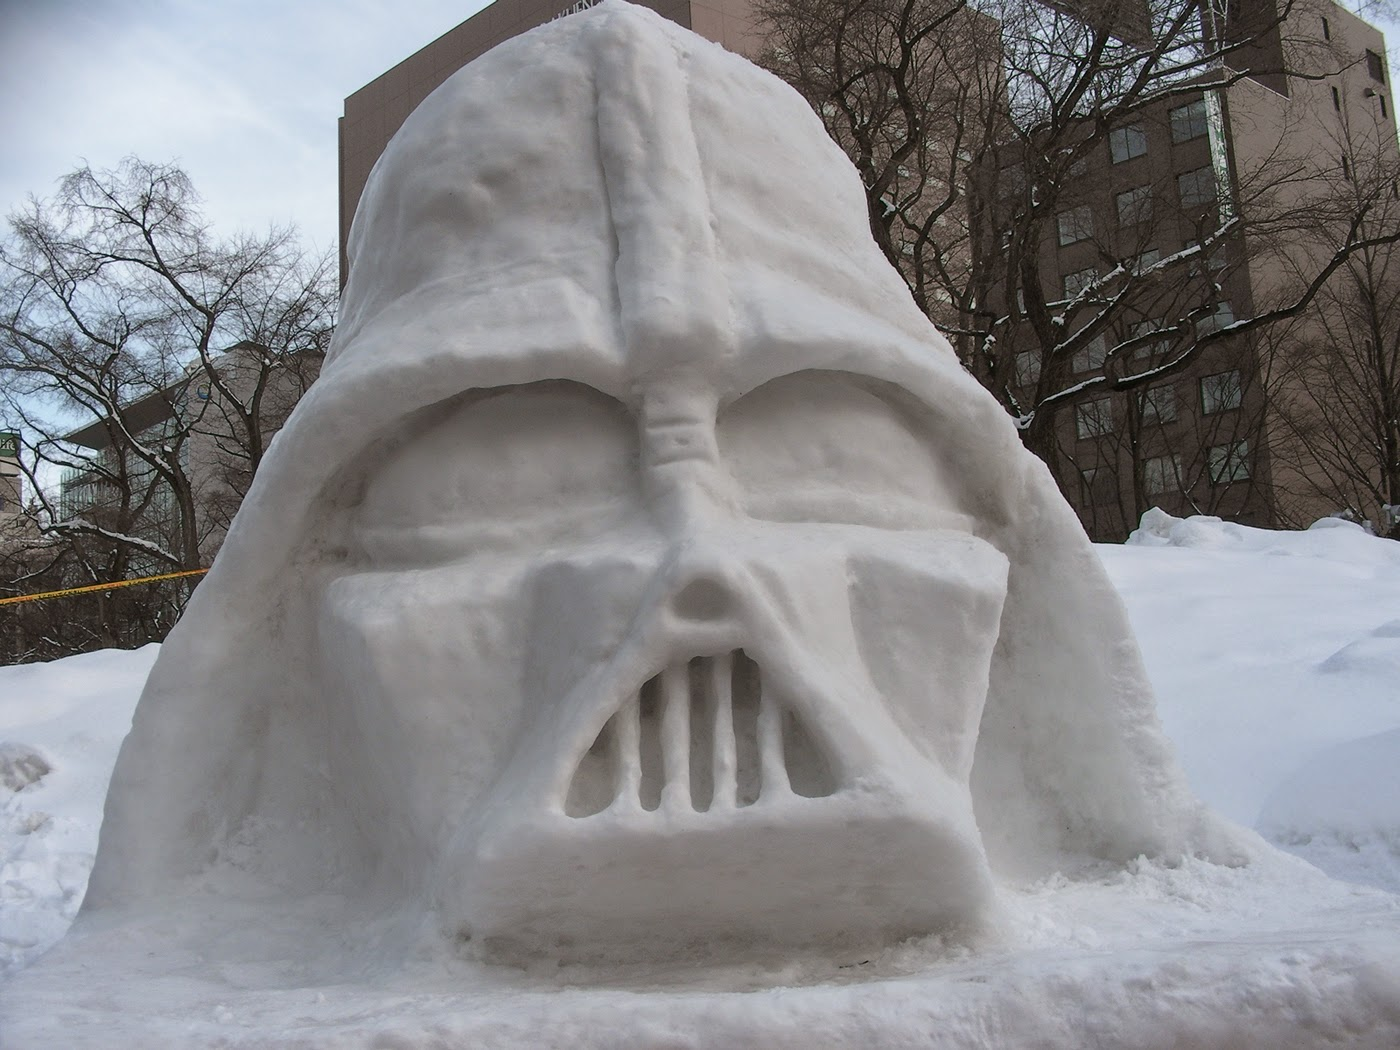 darth vader snow sculpture